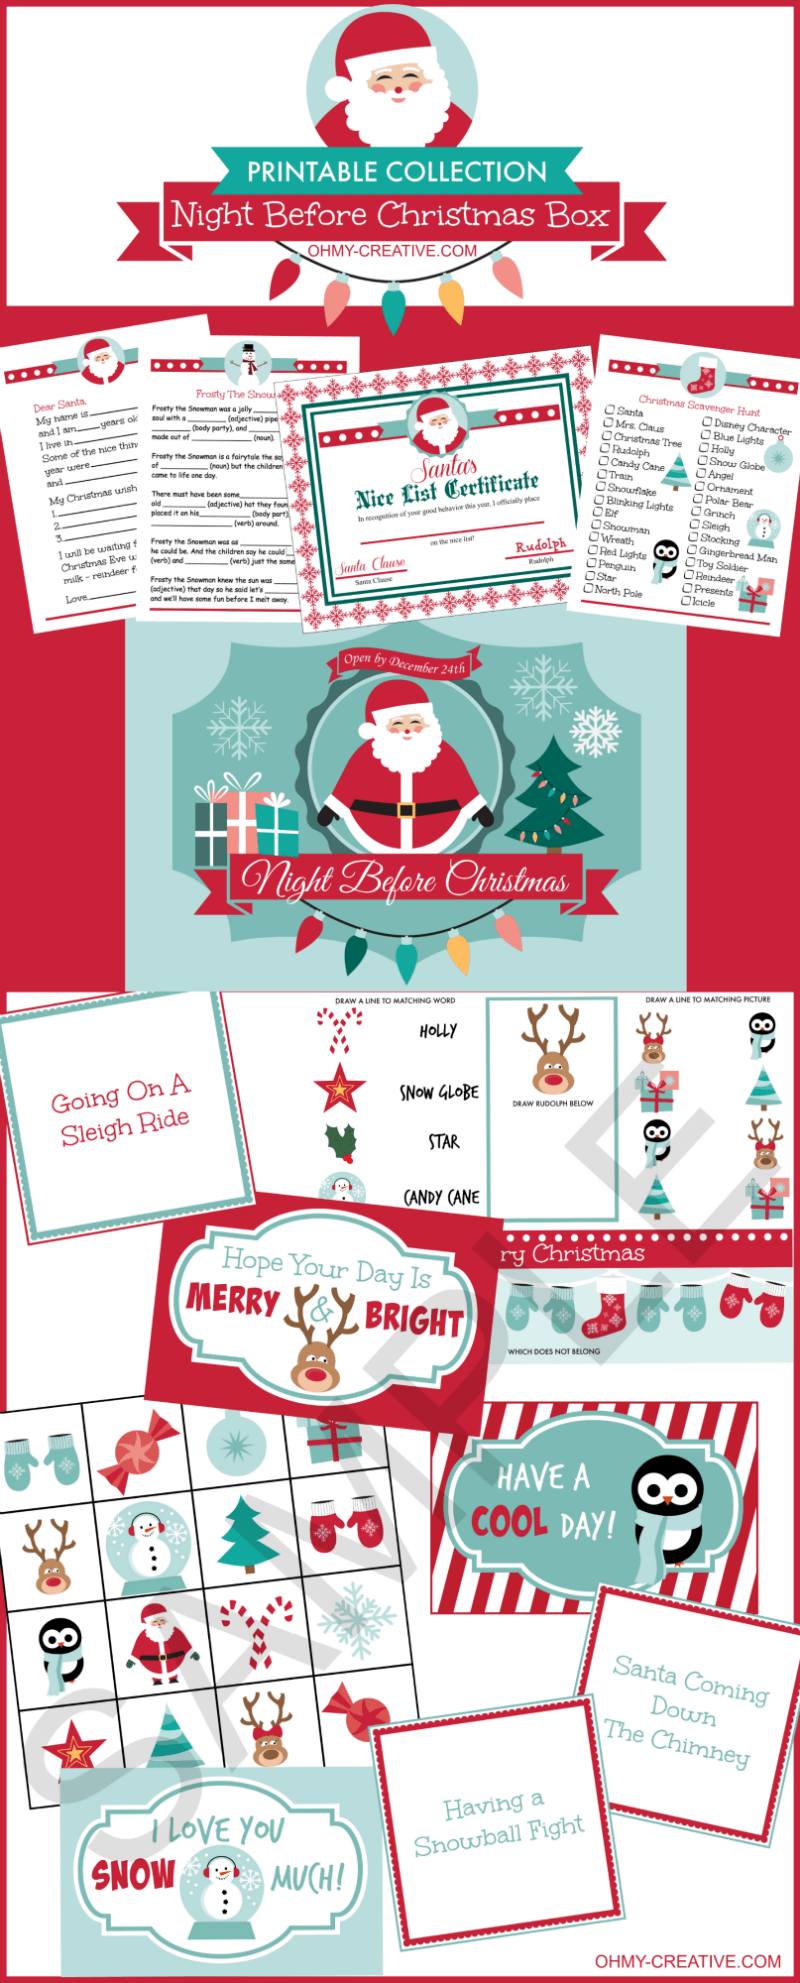 """From toddlers to teens start a new family tradition on Christmas Eve with this Night Before Christmas Box Printable Collection! Includes 18 Christmas Themed activity sheets, lunch box notes, games, Santa letter, """"Nice List"""" certificate and an adorable printable label for the Christmas Eve box! Fun for all ages! 